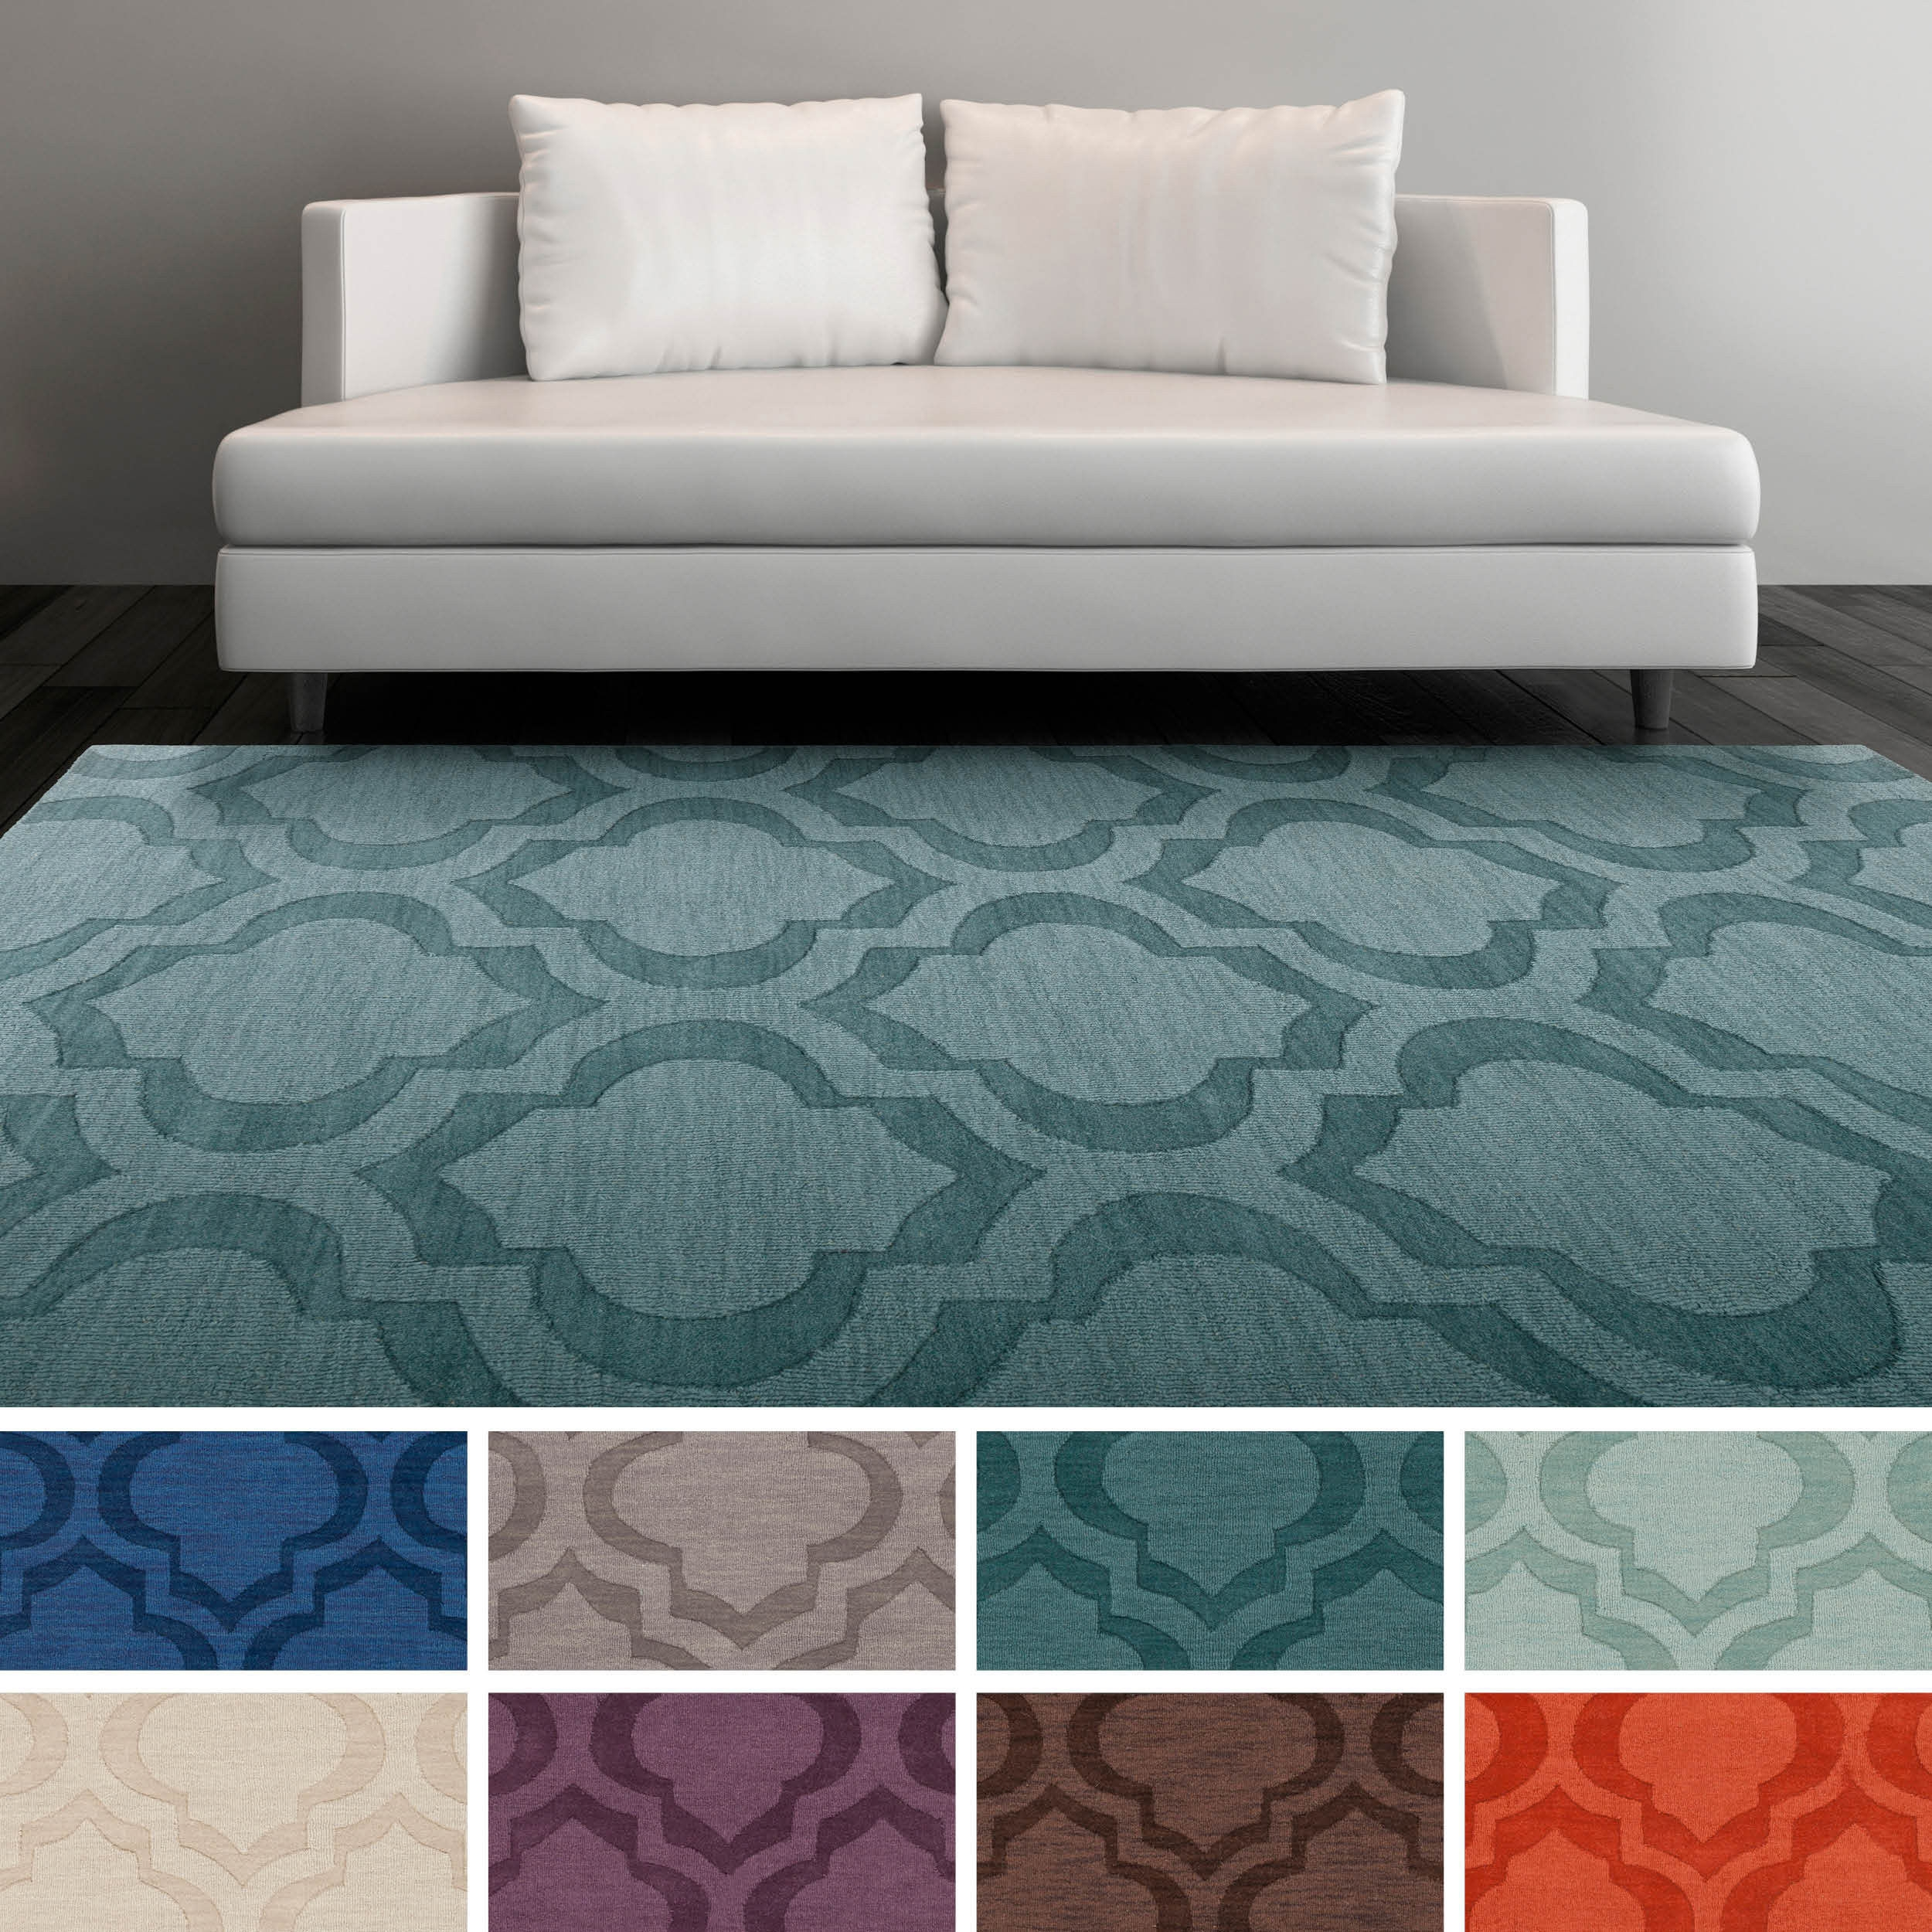 Area Rug 8×10 Canada Turquoise Area Rugs Canada Purple Area Rugs In 9×12 Wool Area Rugs (View 10 of 15)